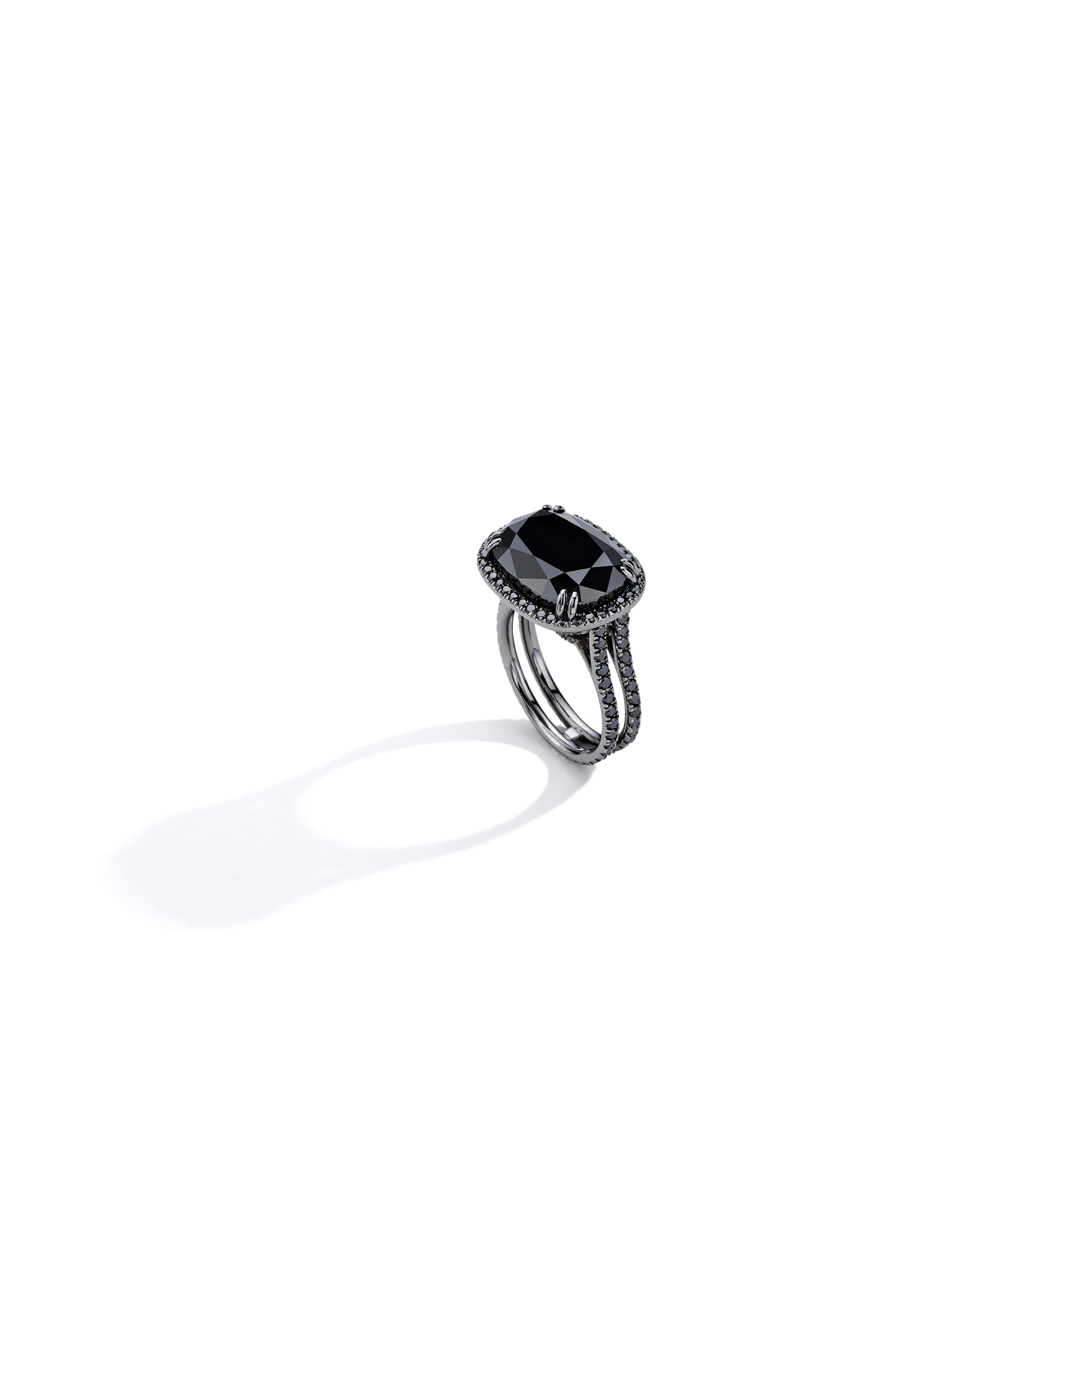 mish_products_rings_Arden-Plychrm Tourm-Ring-8